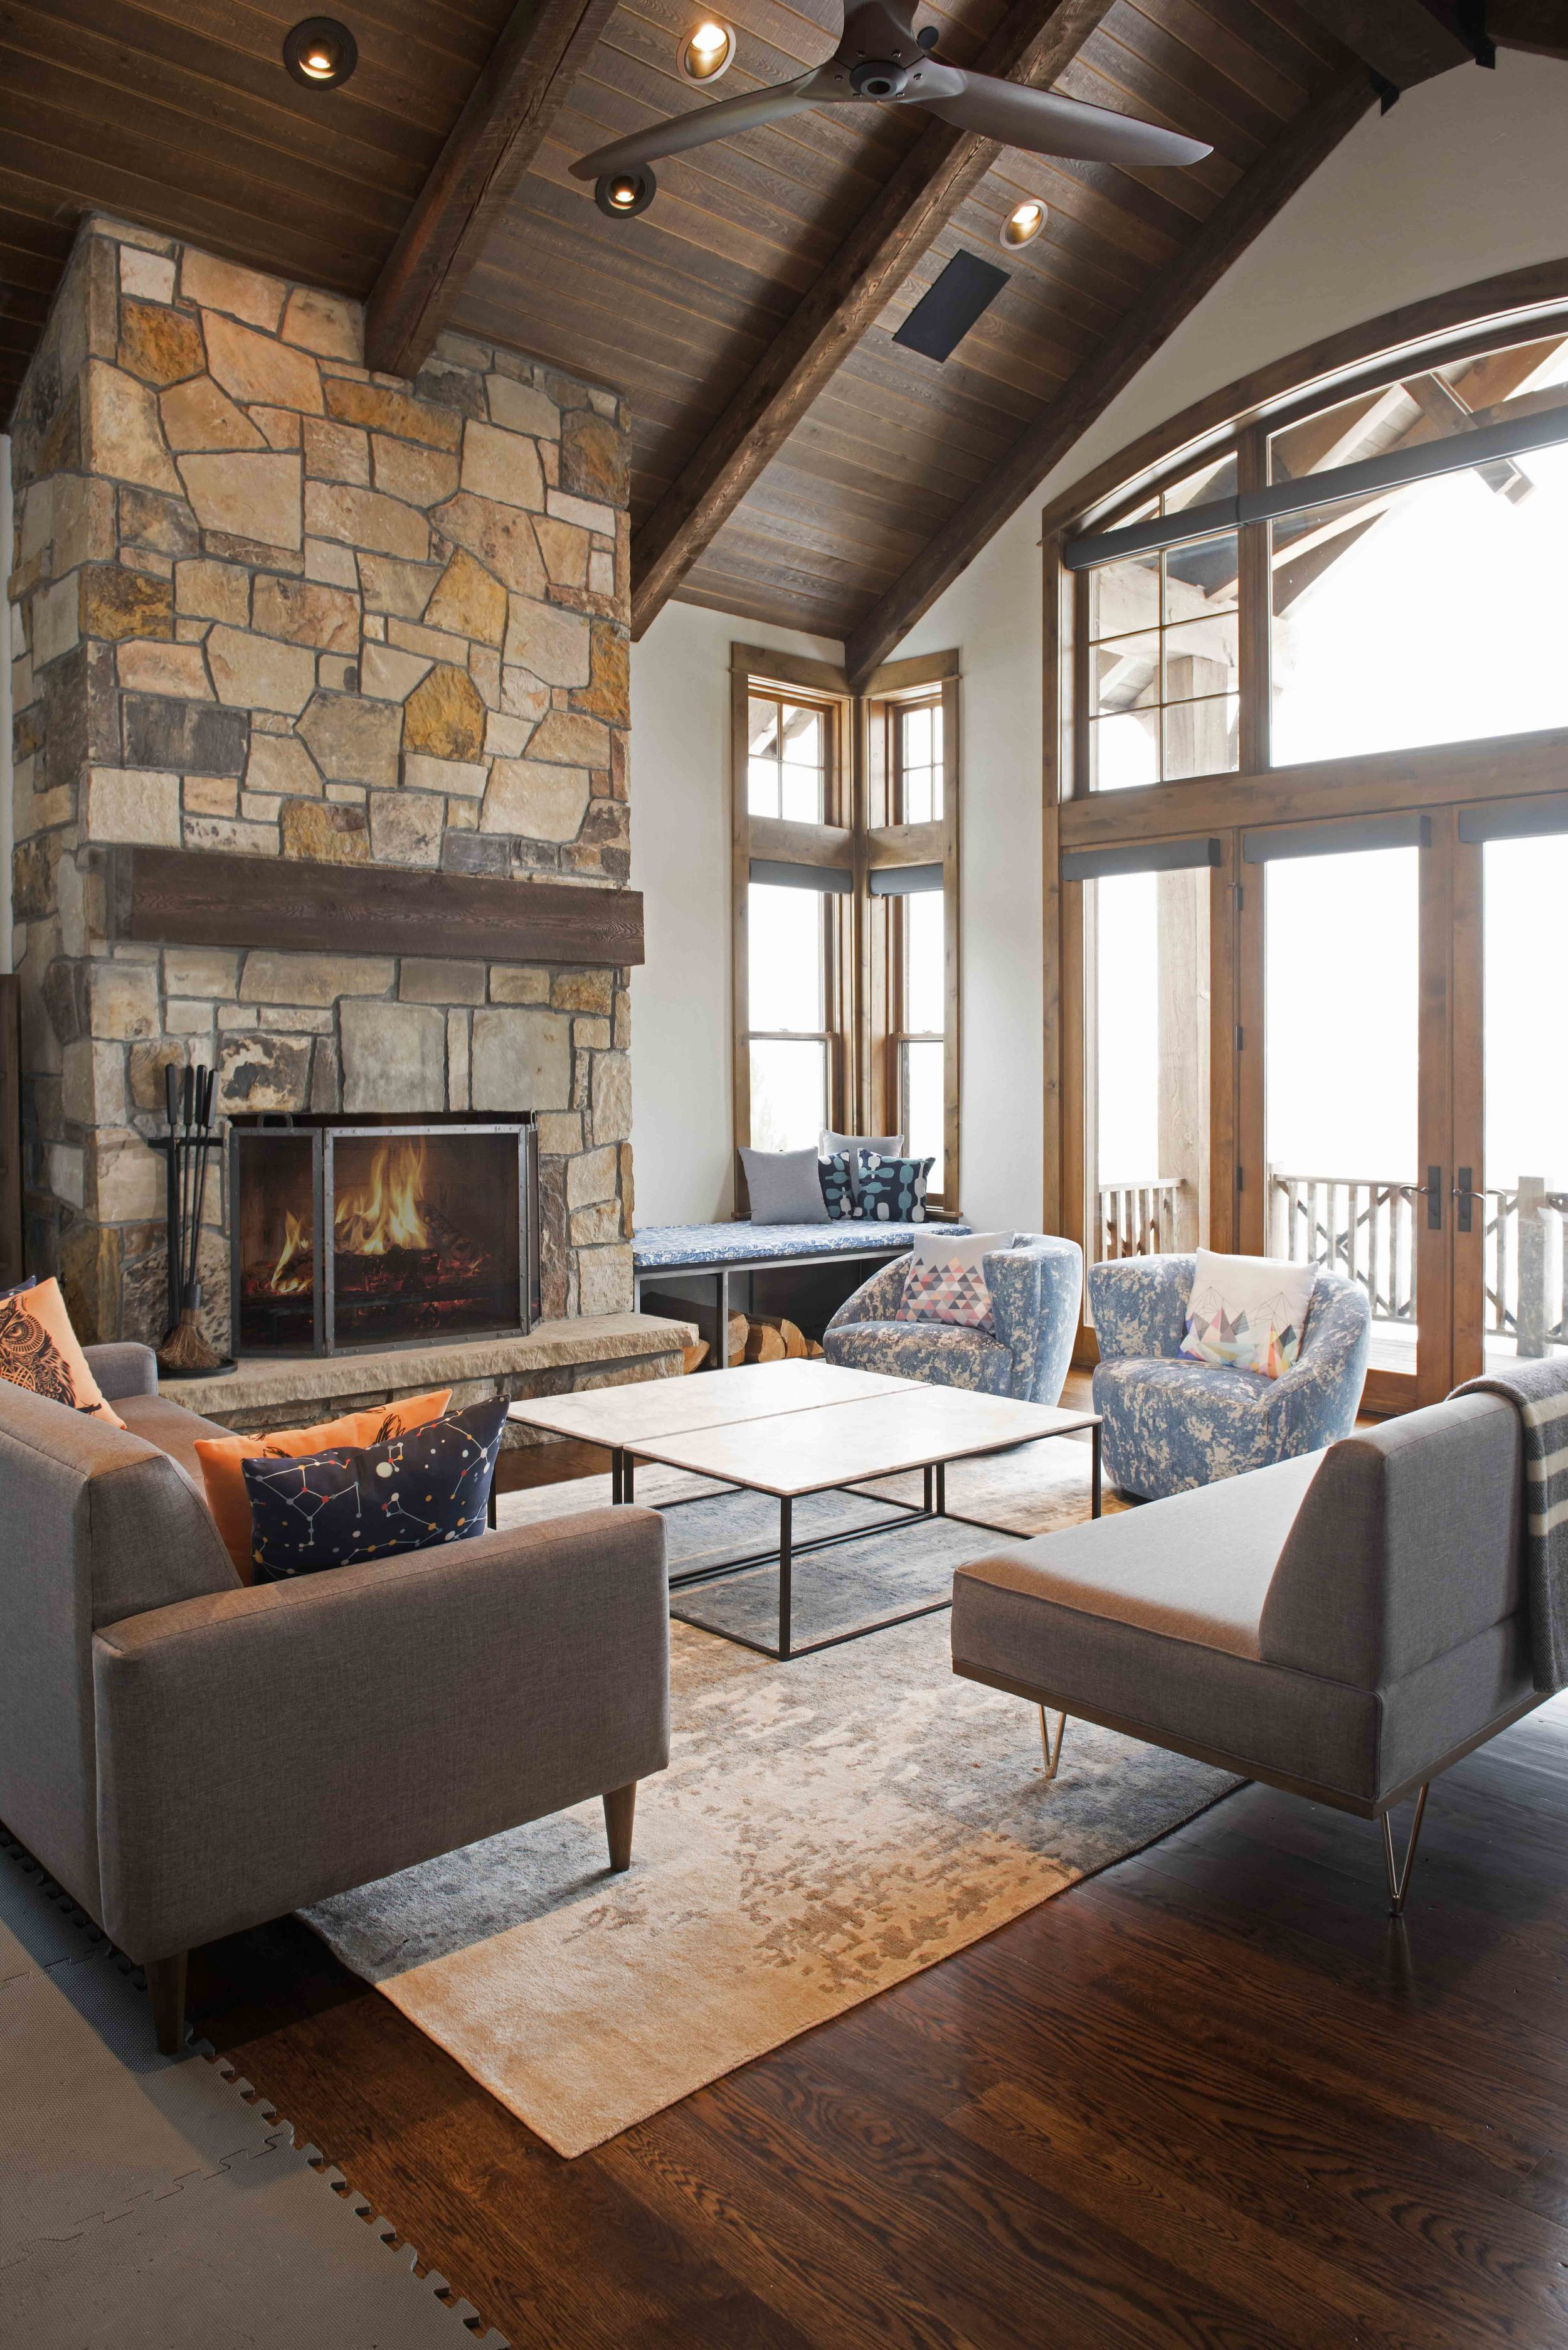 Modern and cozy in the same room is a hard atmosphere to create.  I love how you could just curl up by the fire on these modern furnishings.